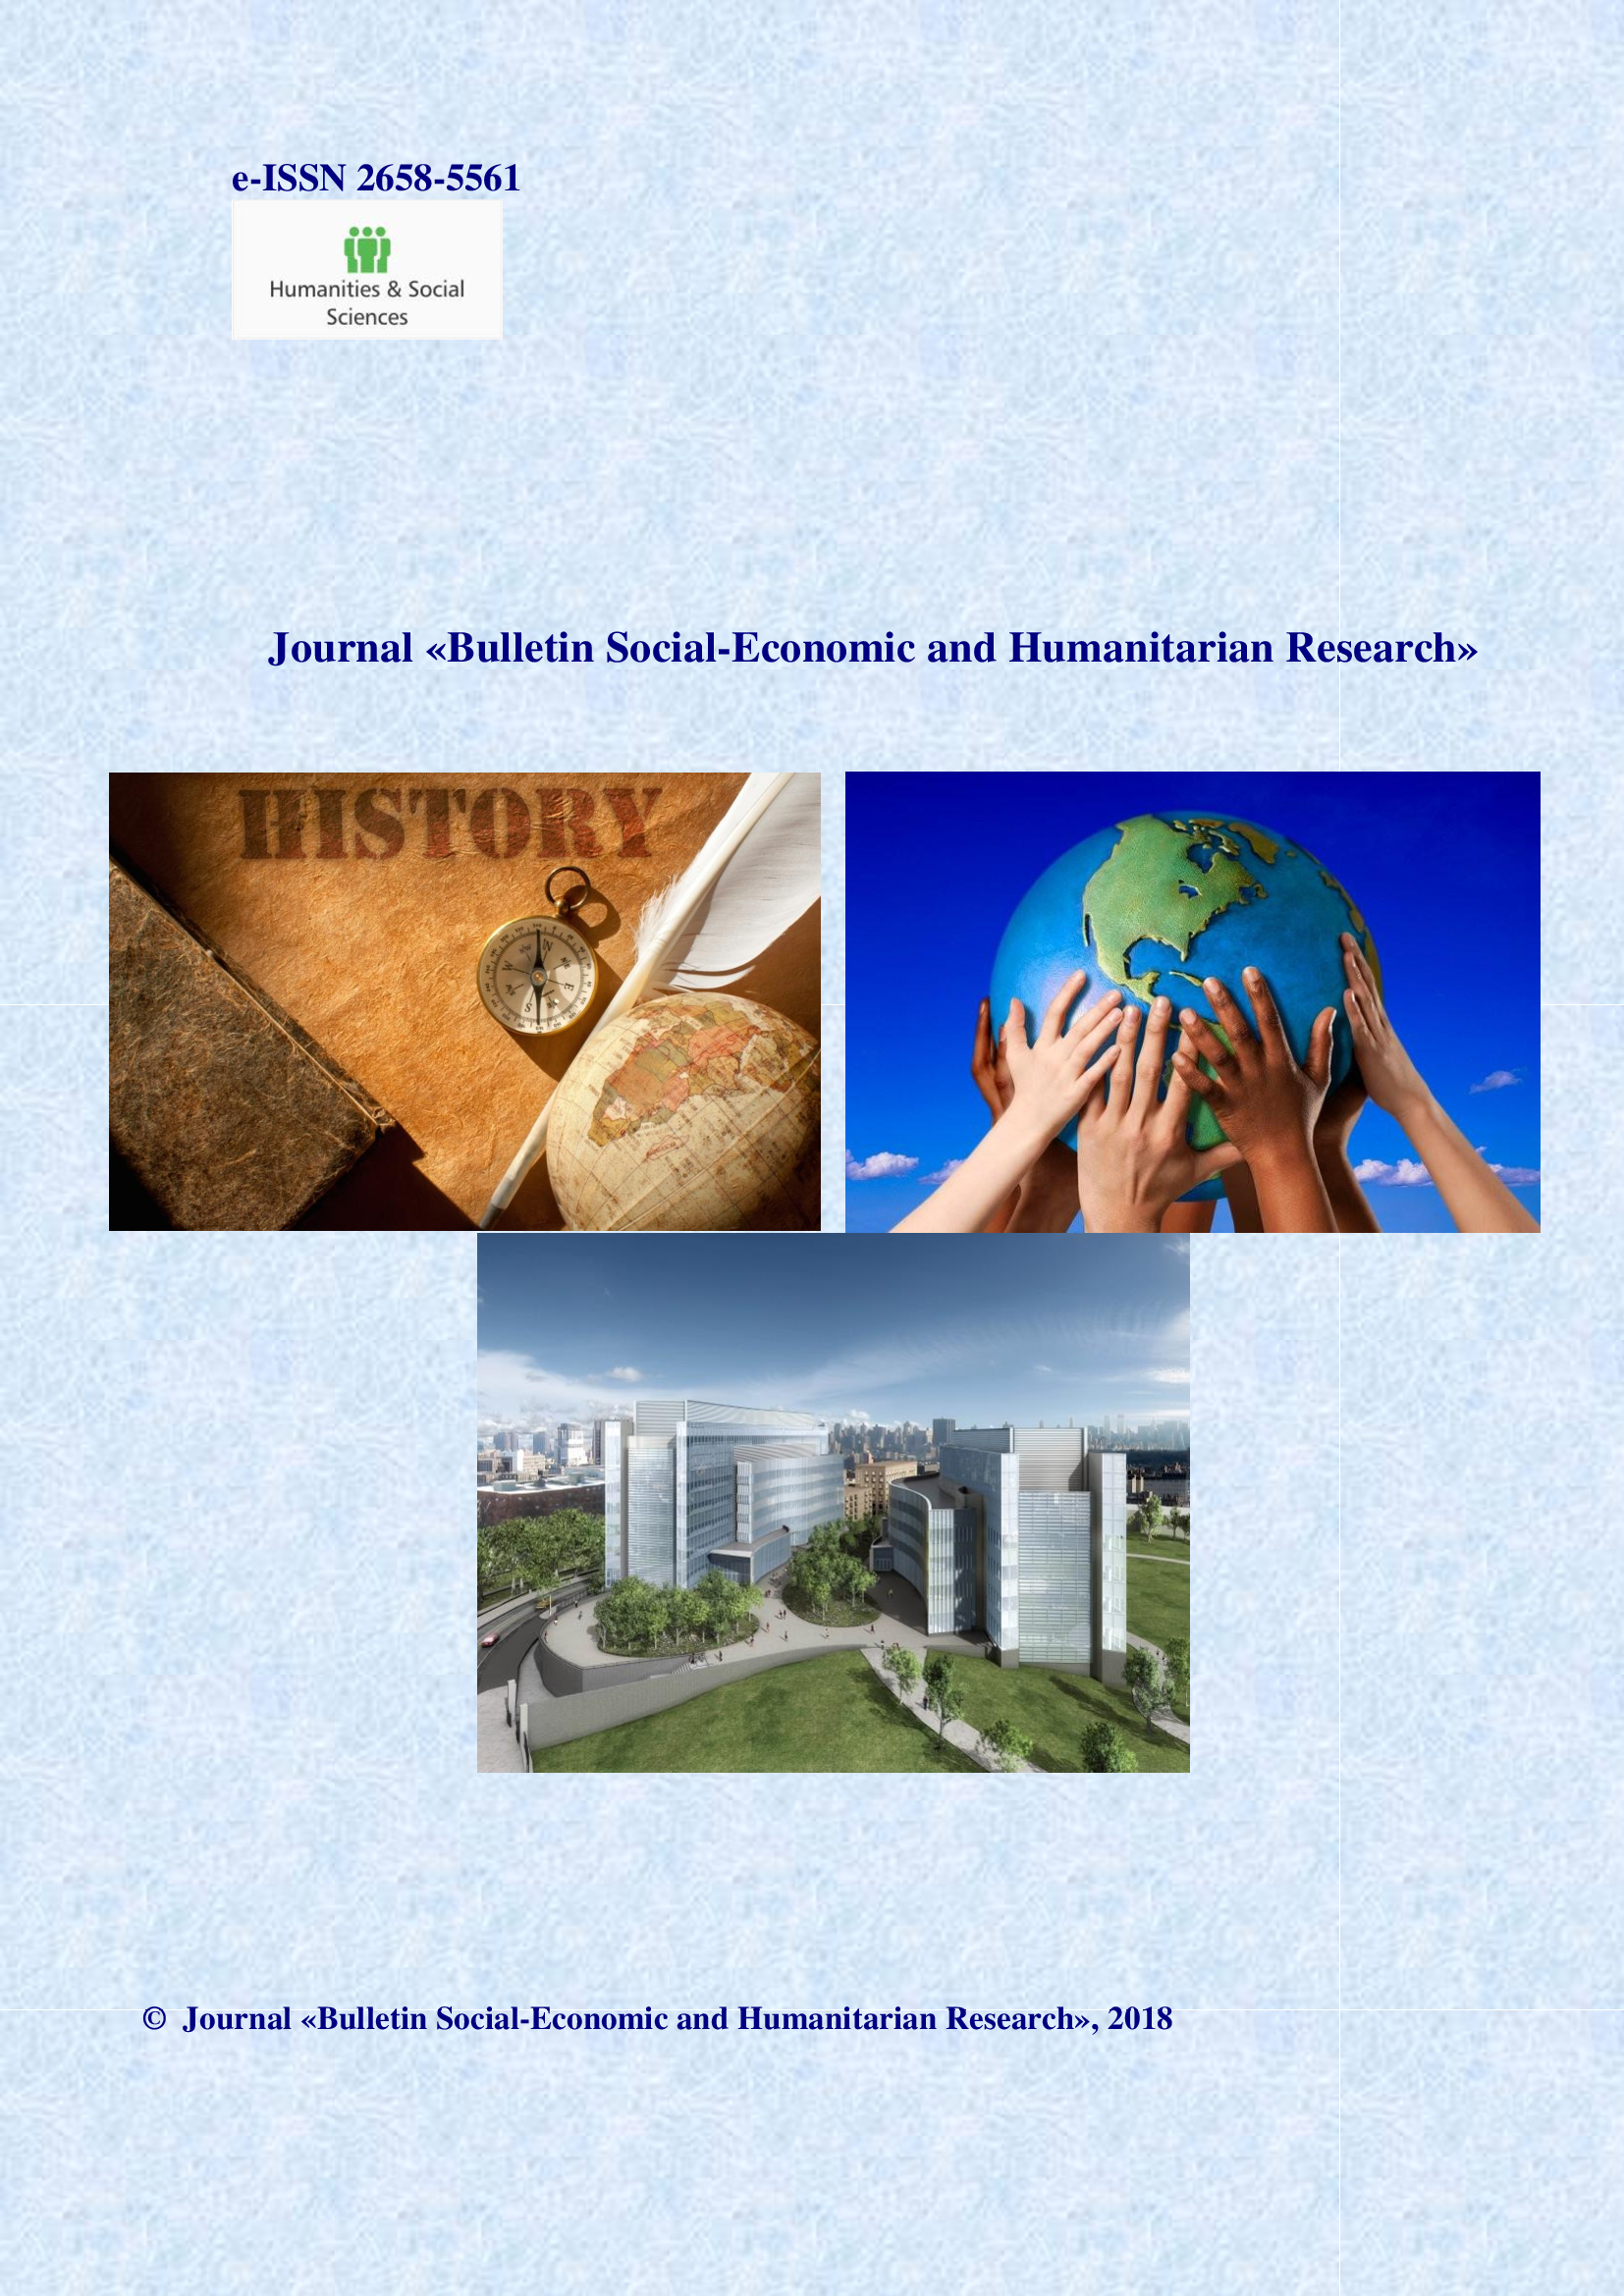 Bulletin of Social-Economic and Humanitarian Research